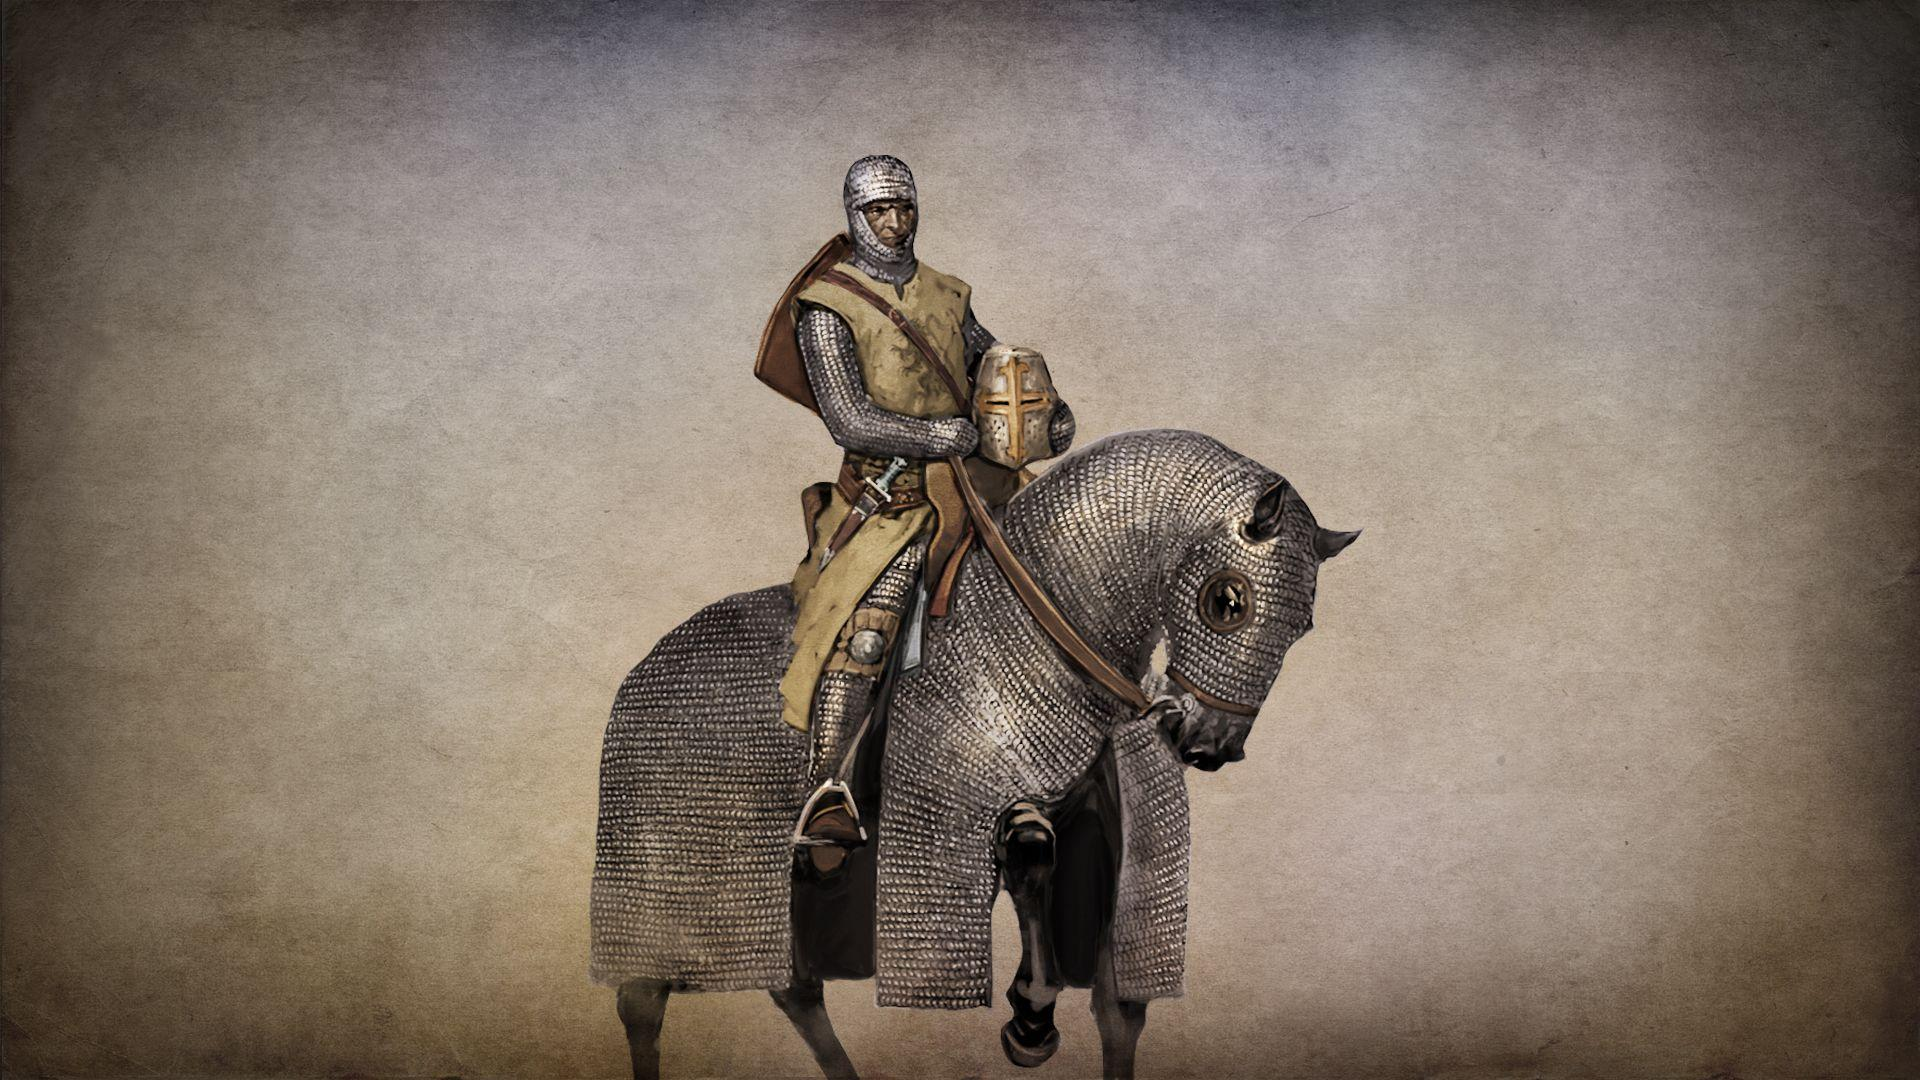 Mount And Blade Wallpapers Wallpaper Cave